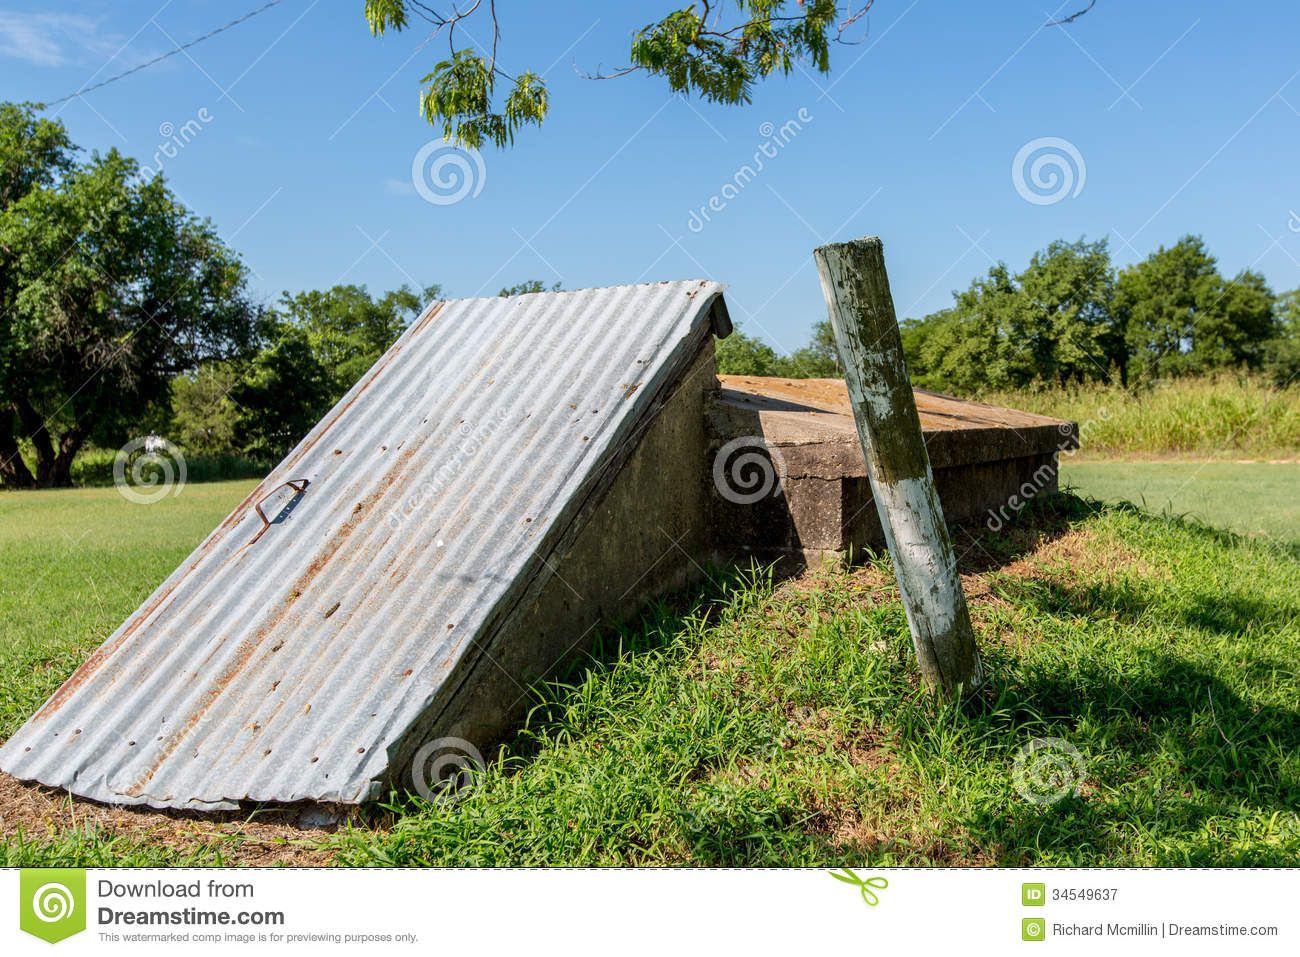 An old storm cellar or tornado shelter in rural oklahoma